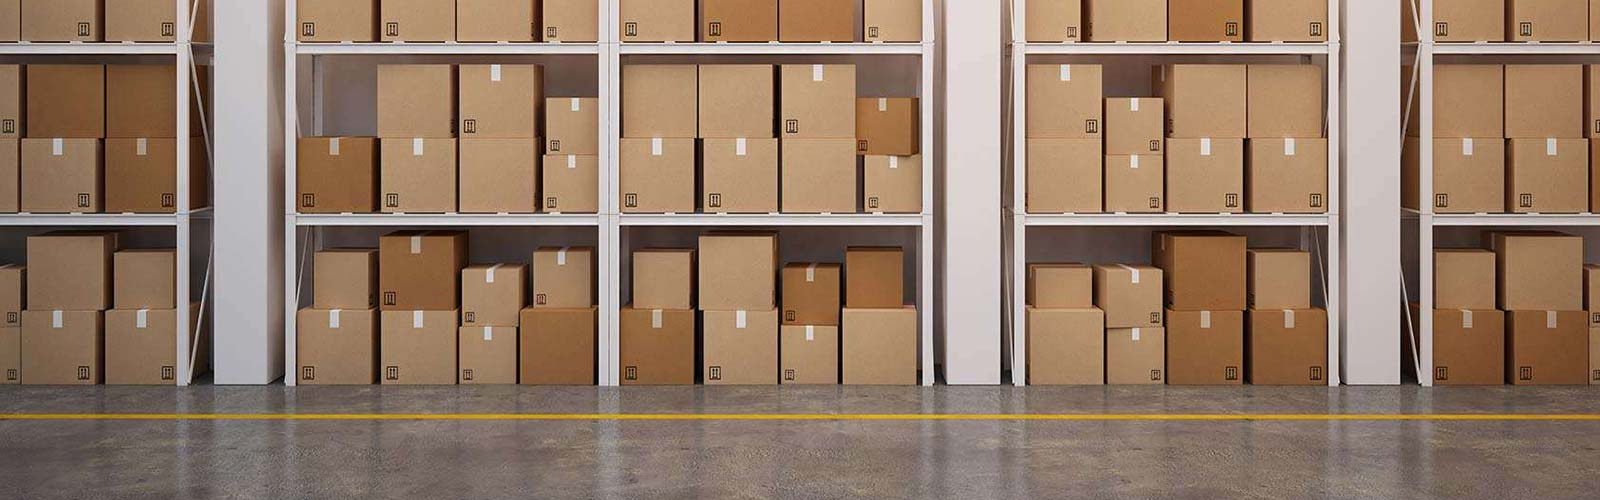 storage and warehousing in Columbia and Greenville SC